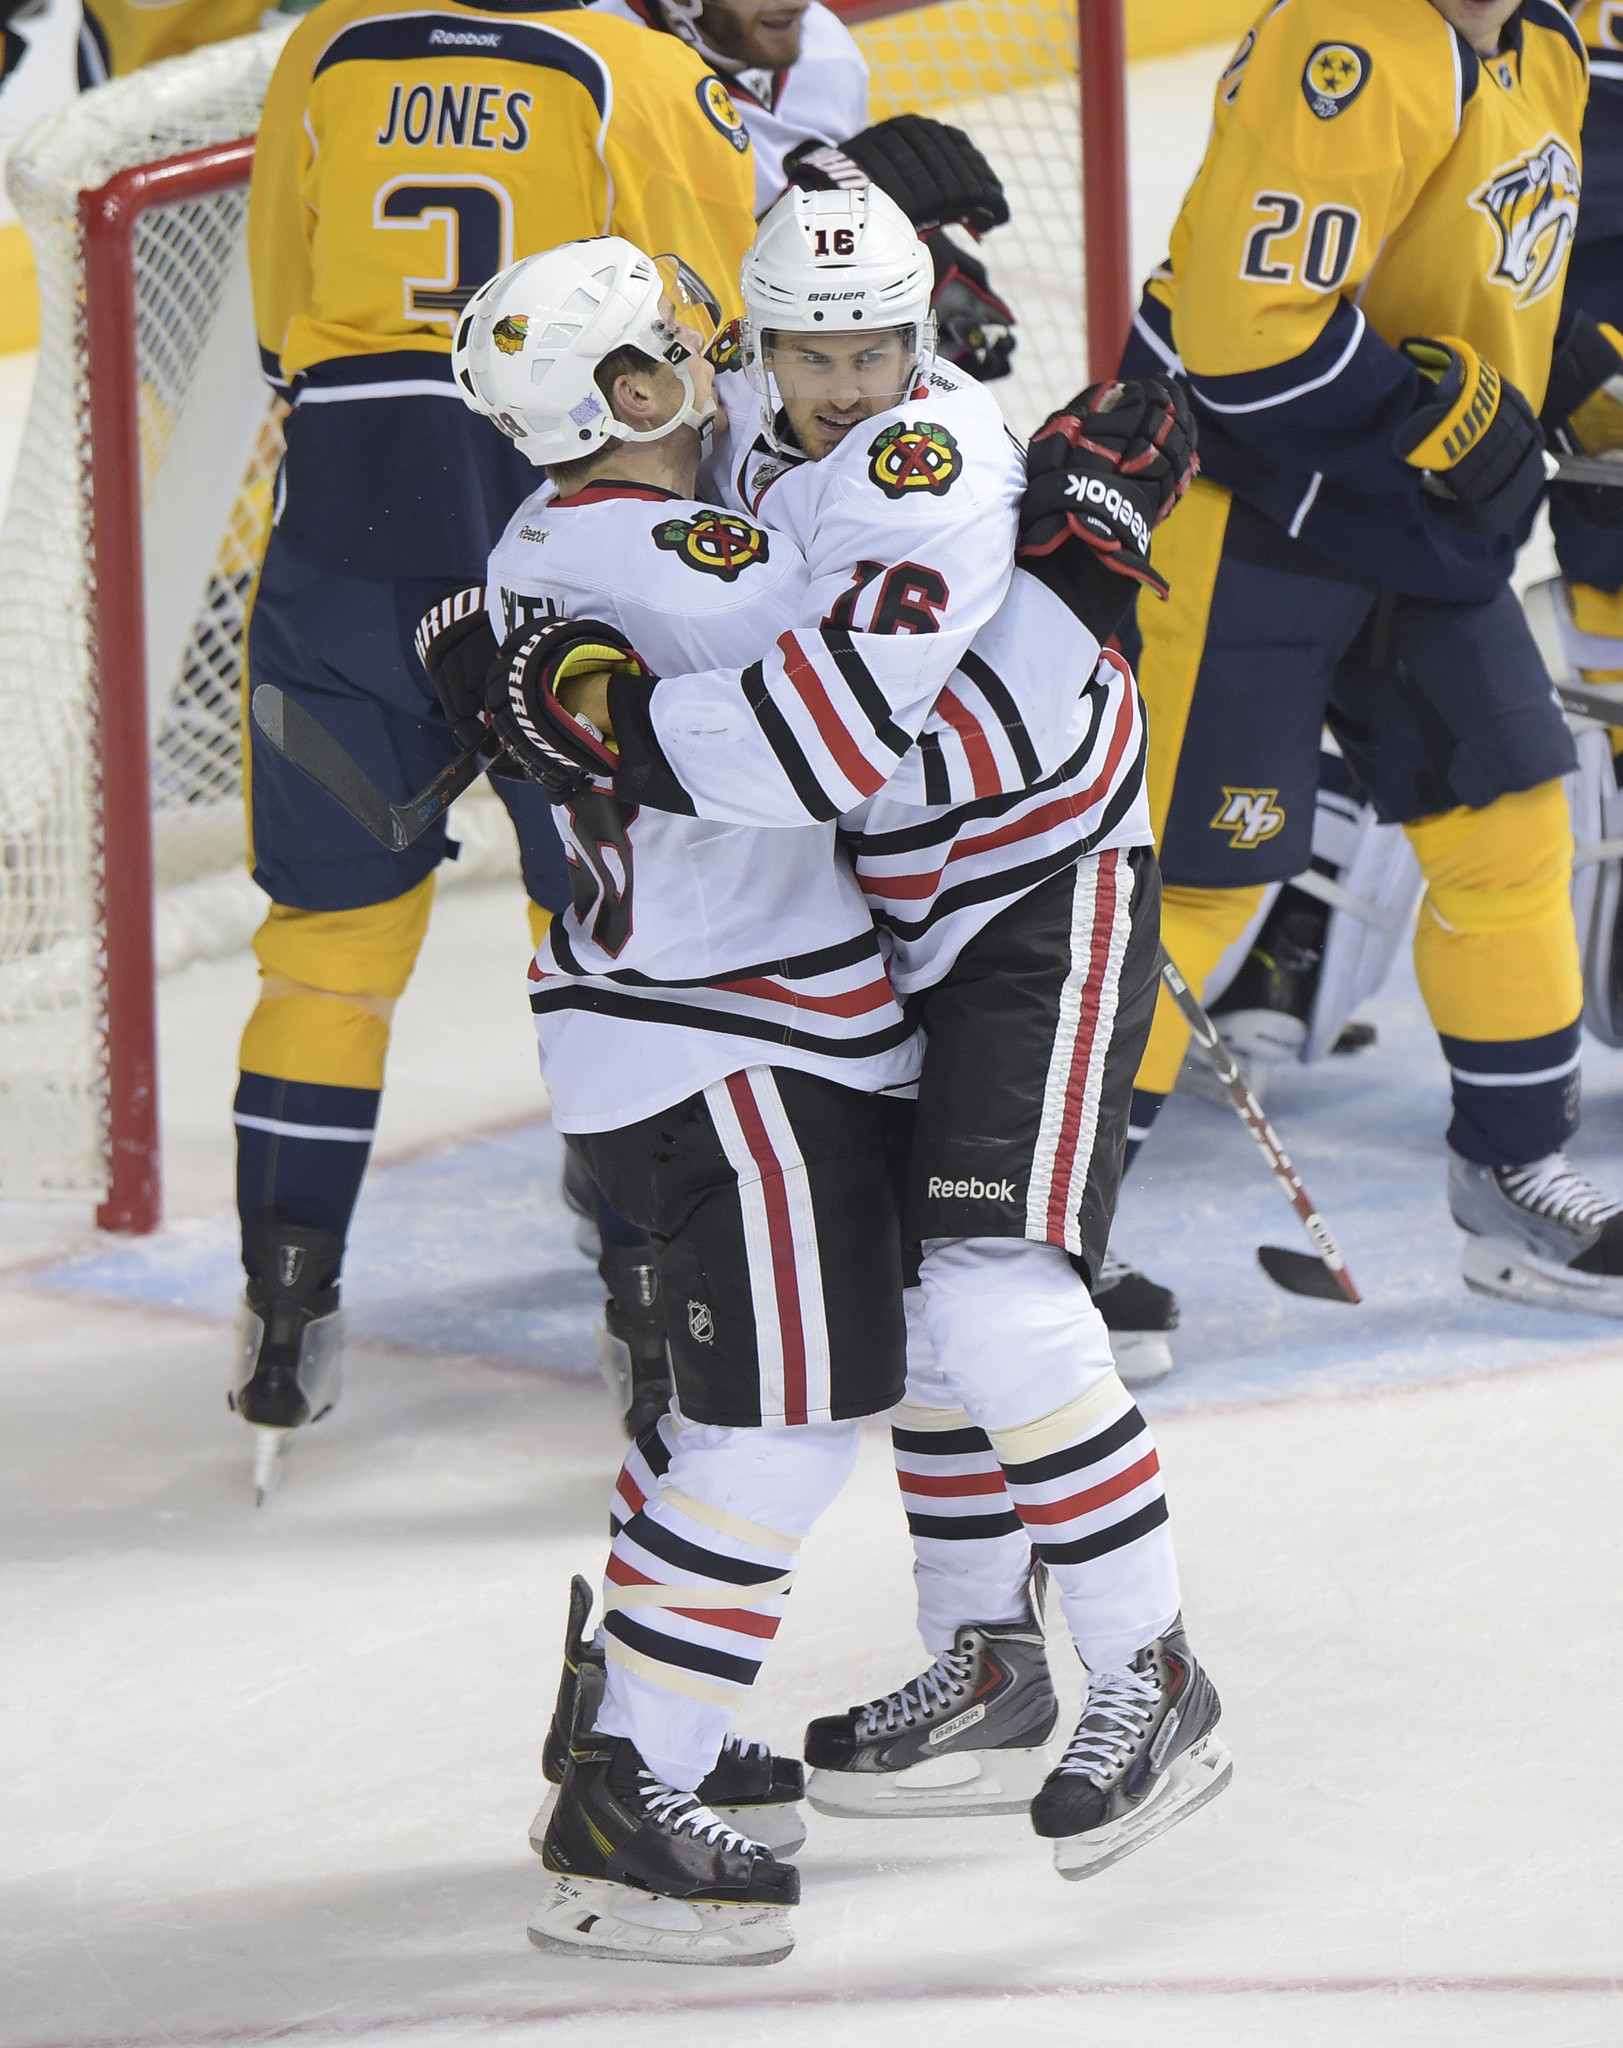 Thursday's recap: Predators 3, Blackhawks 2